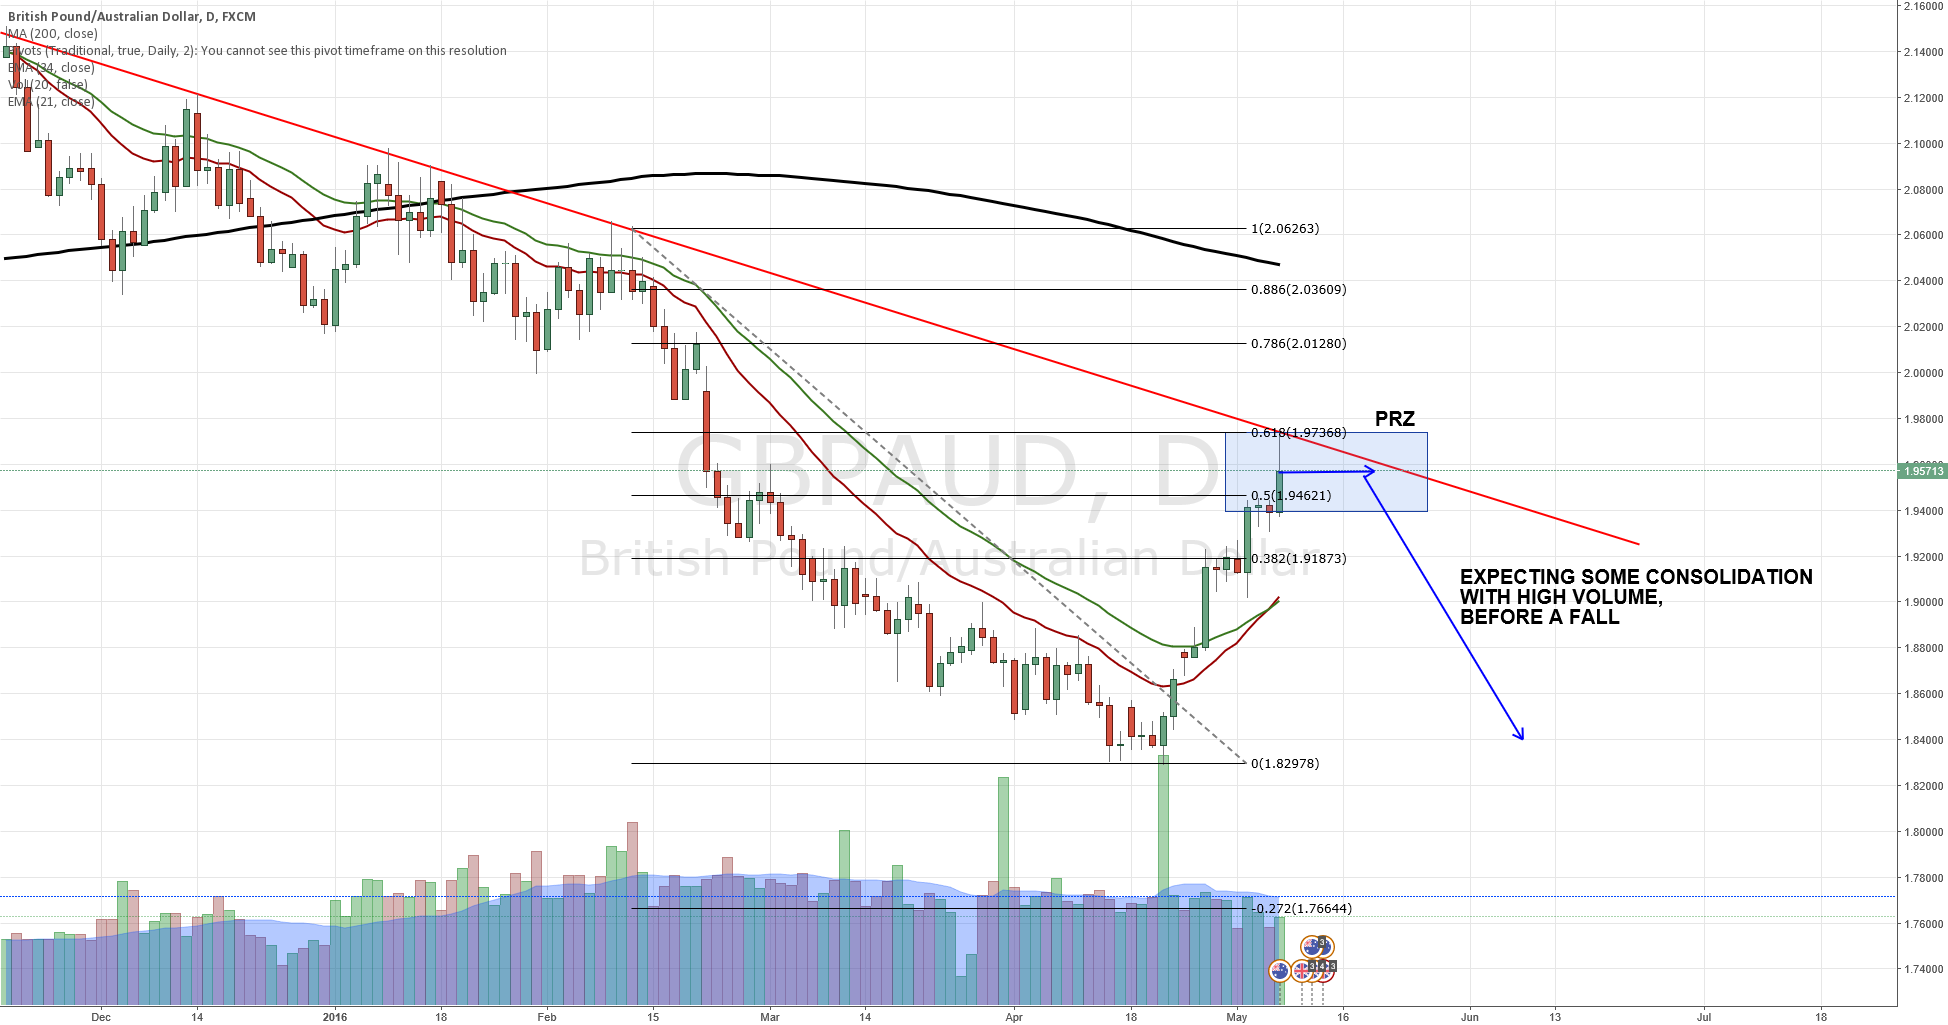 GBPAUD Waiting on volume spike to go short